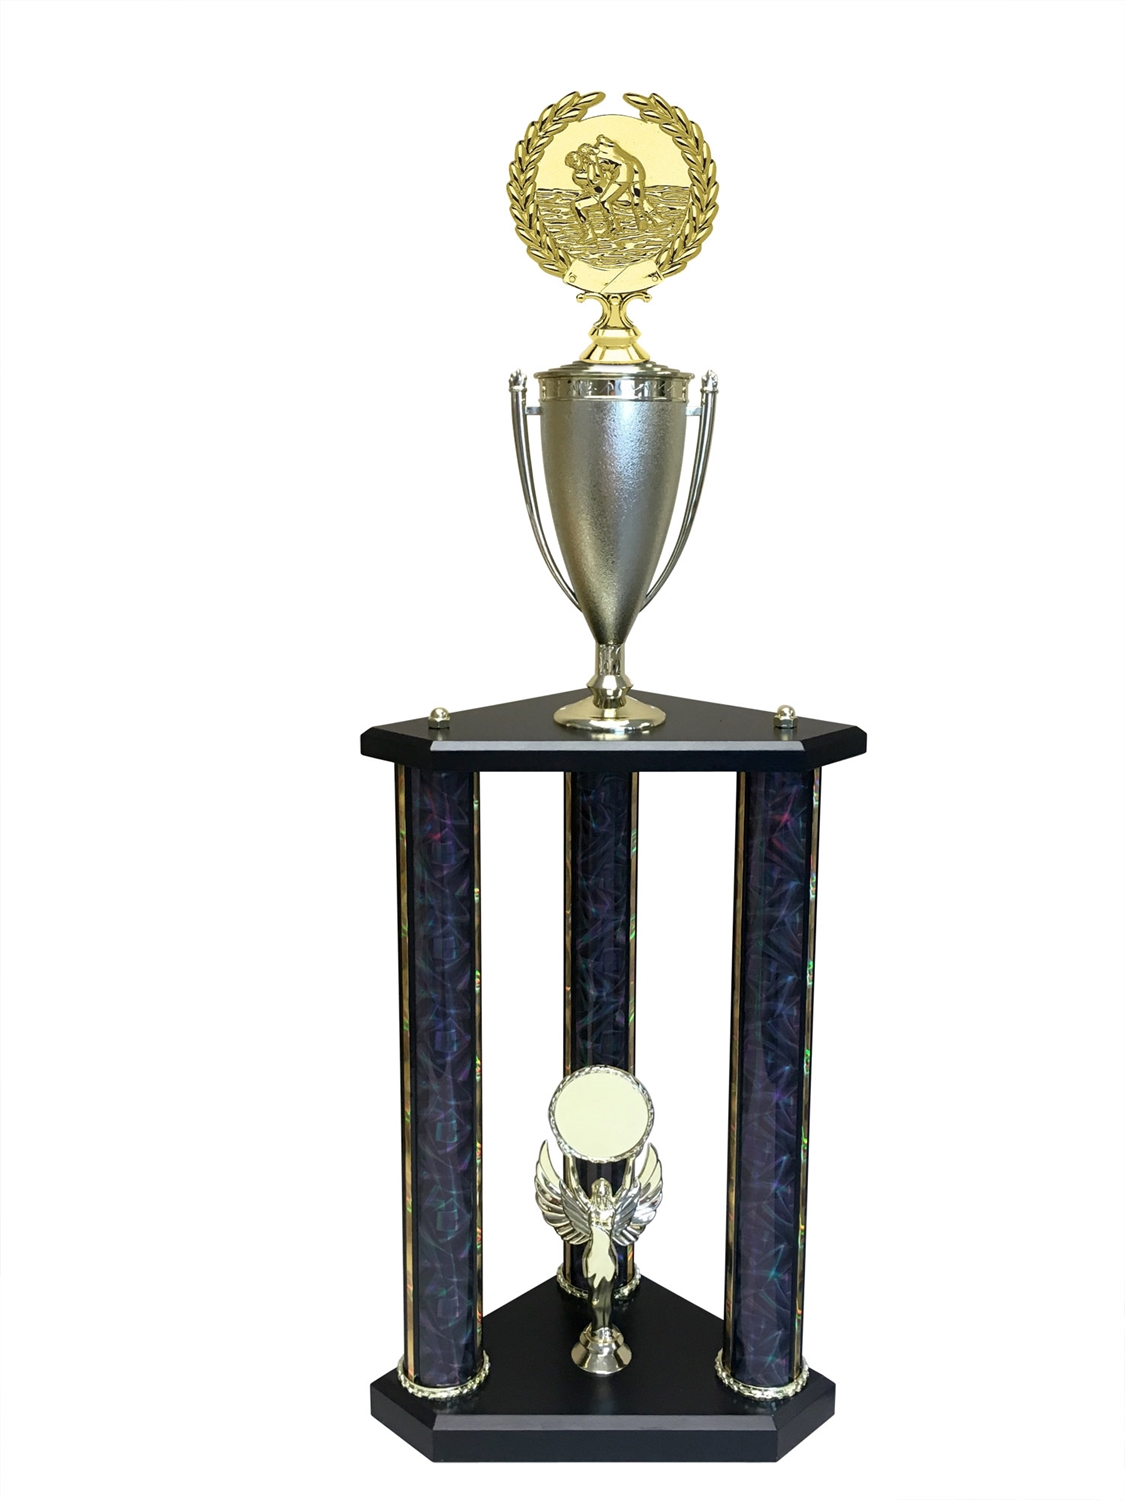 3 Post Wrestling Trophy in 11 colors & 3 sizes